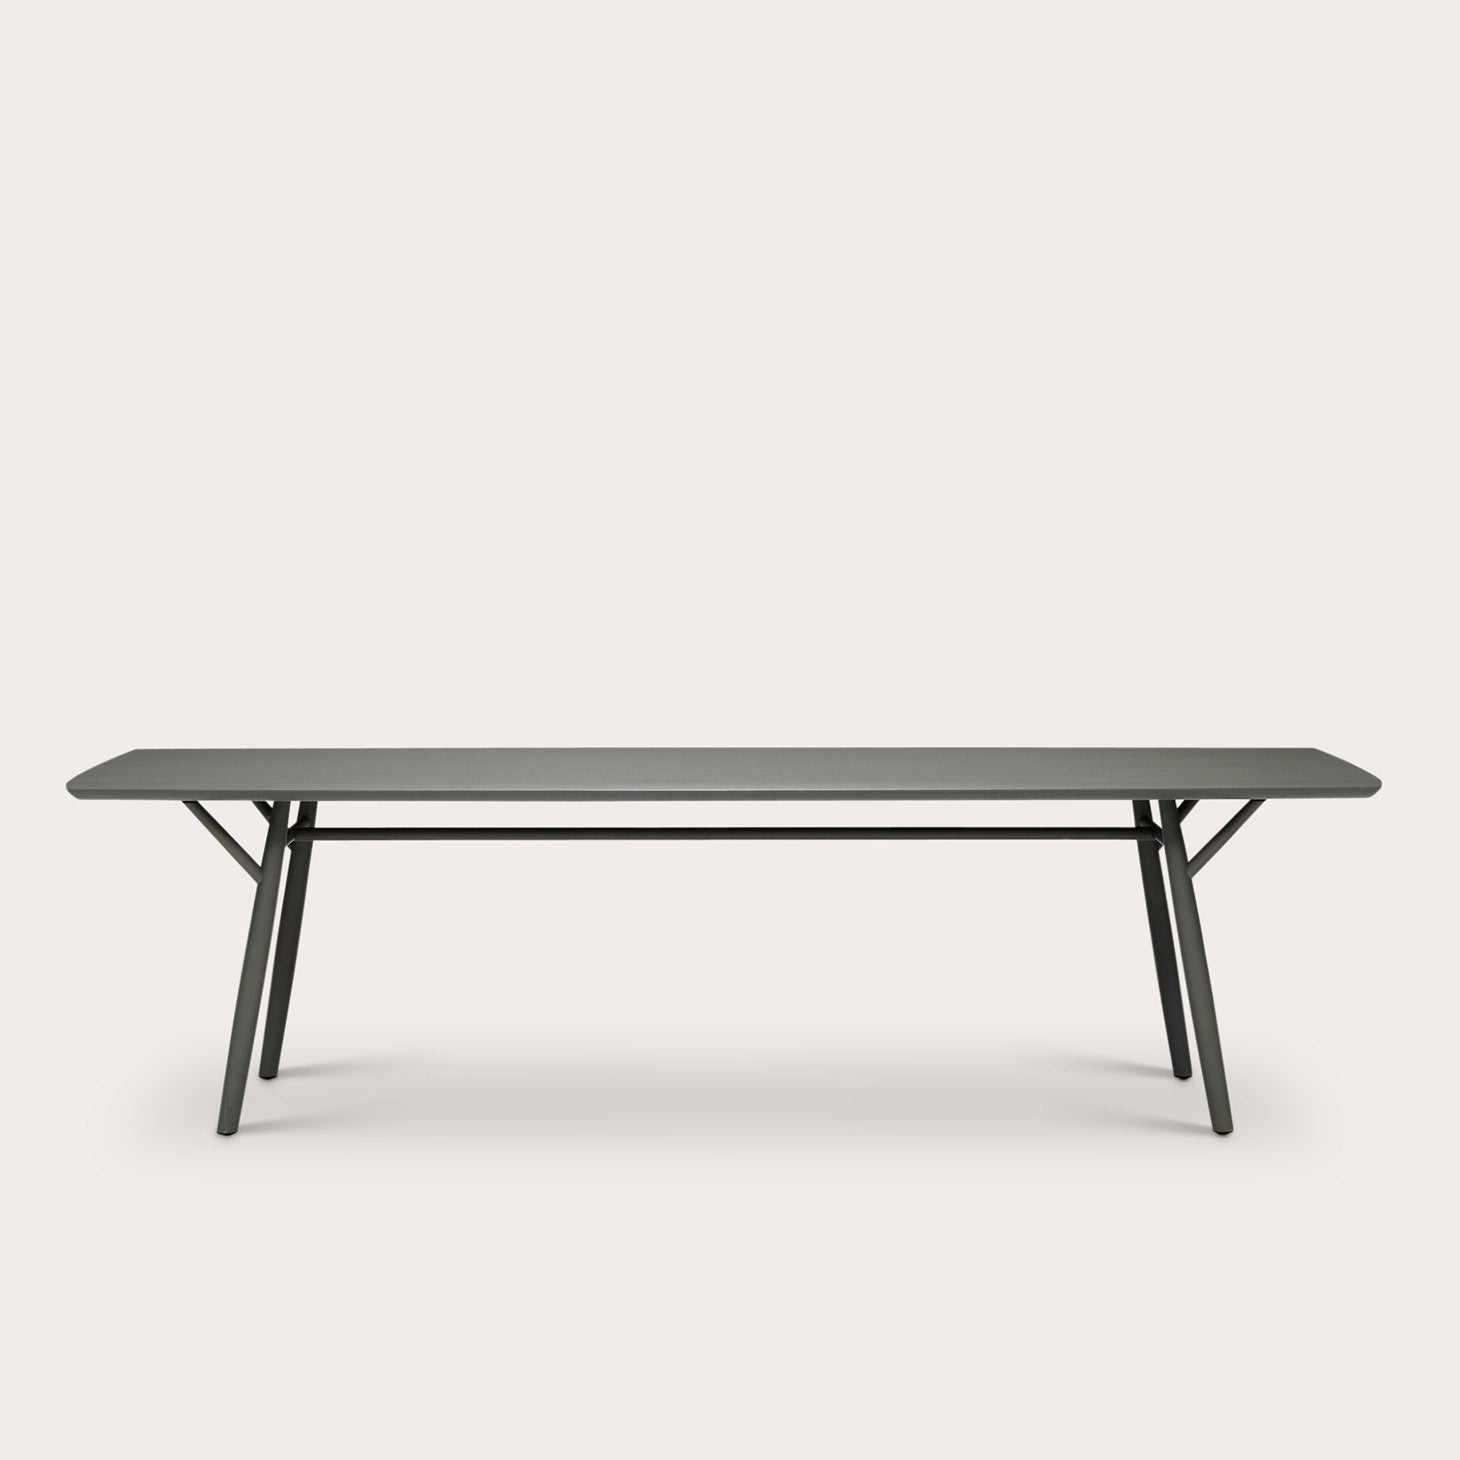 Oiseau Tables Yabu Pushelberg Designer Furniture Sku: 247-230-10278